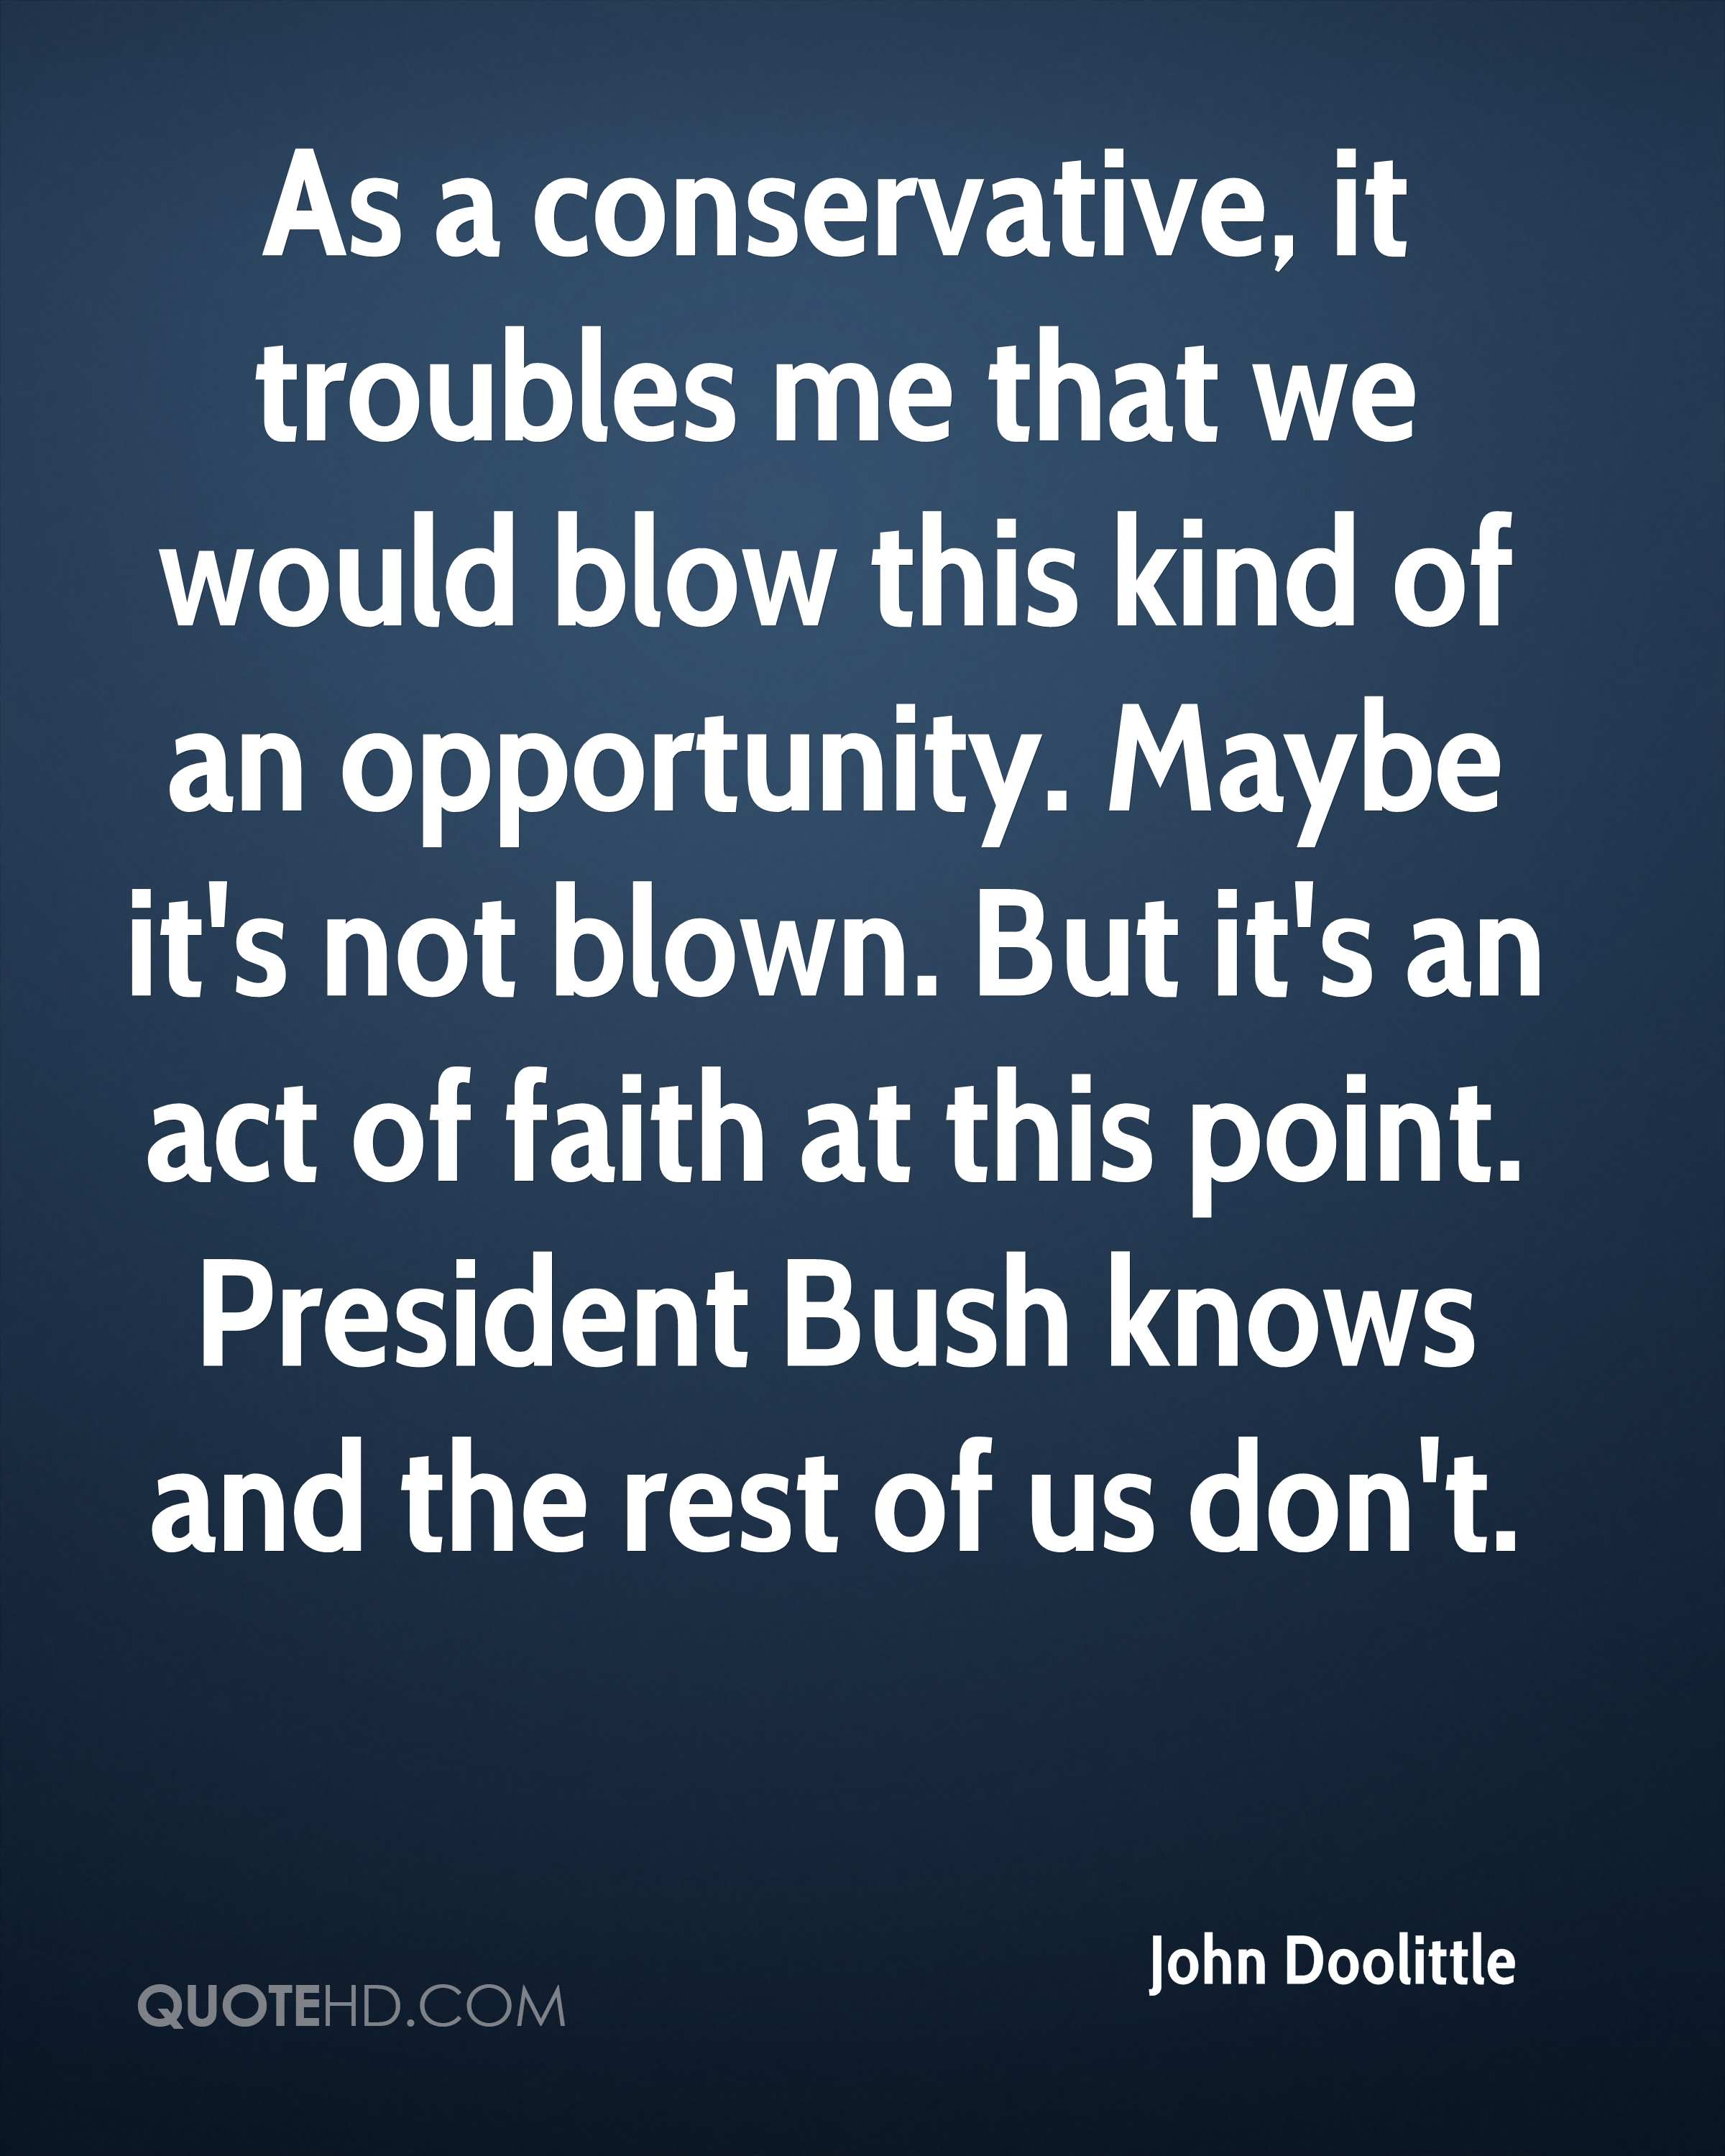 As a conservative, it troubles me that we would blow this kind of an opportunity. Maybe it's not blown. But it's an act of faith at this point. President Bush knows and the rest of us don't.